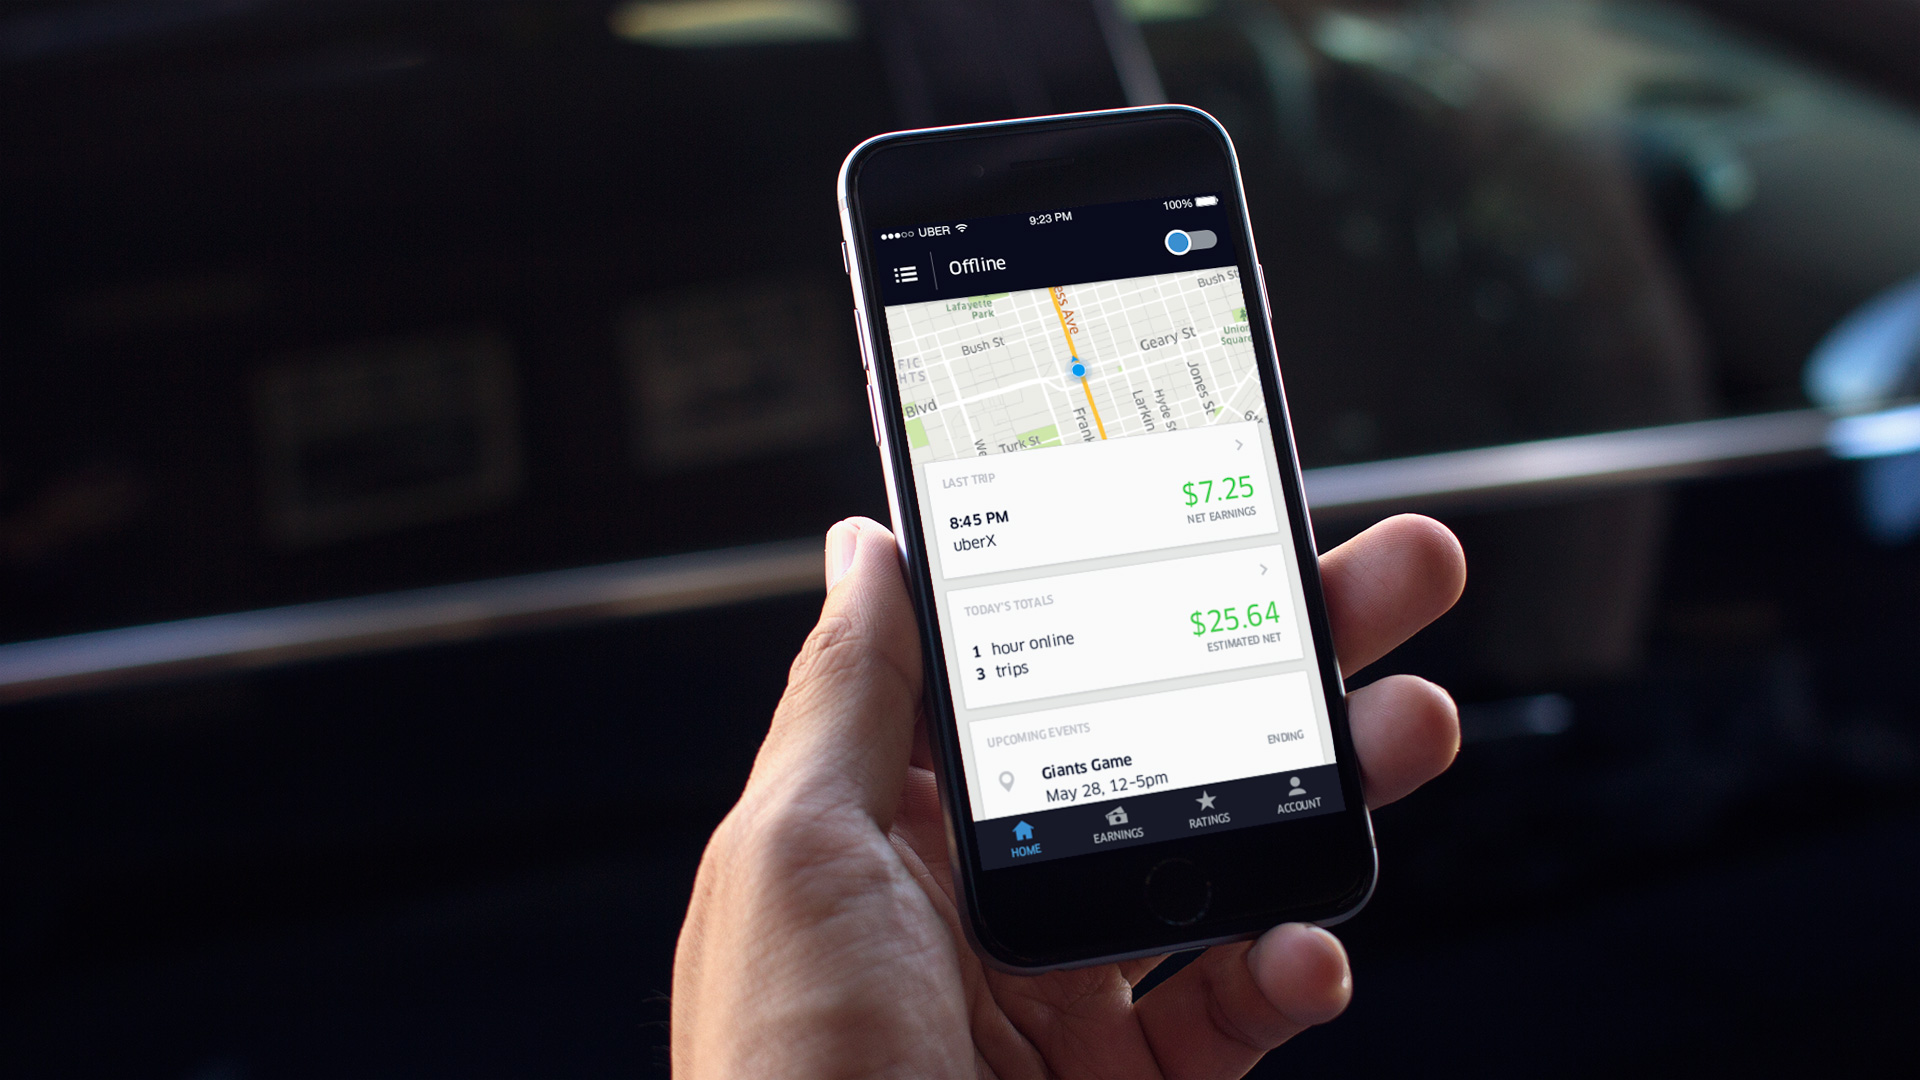 Take a break! Uber drivers must rest 6 hours after driving 12